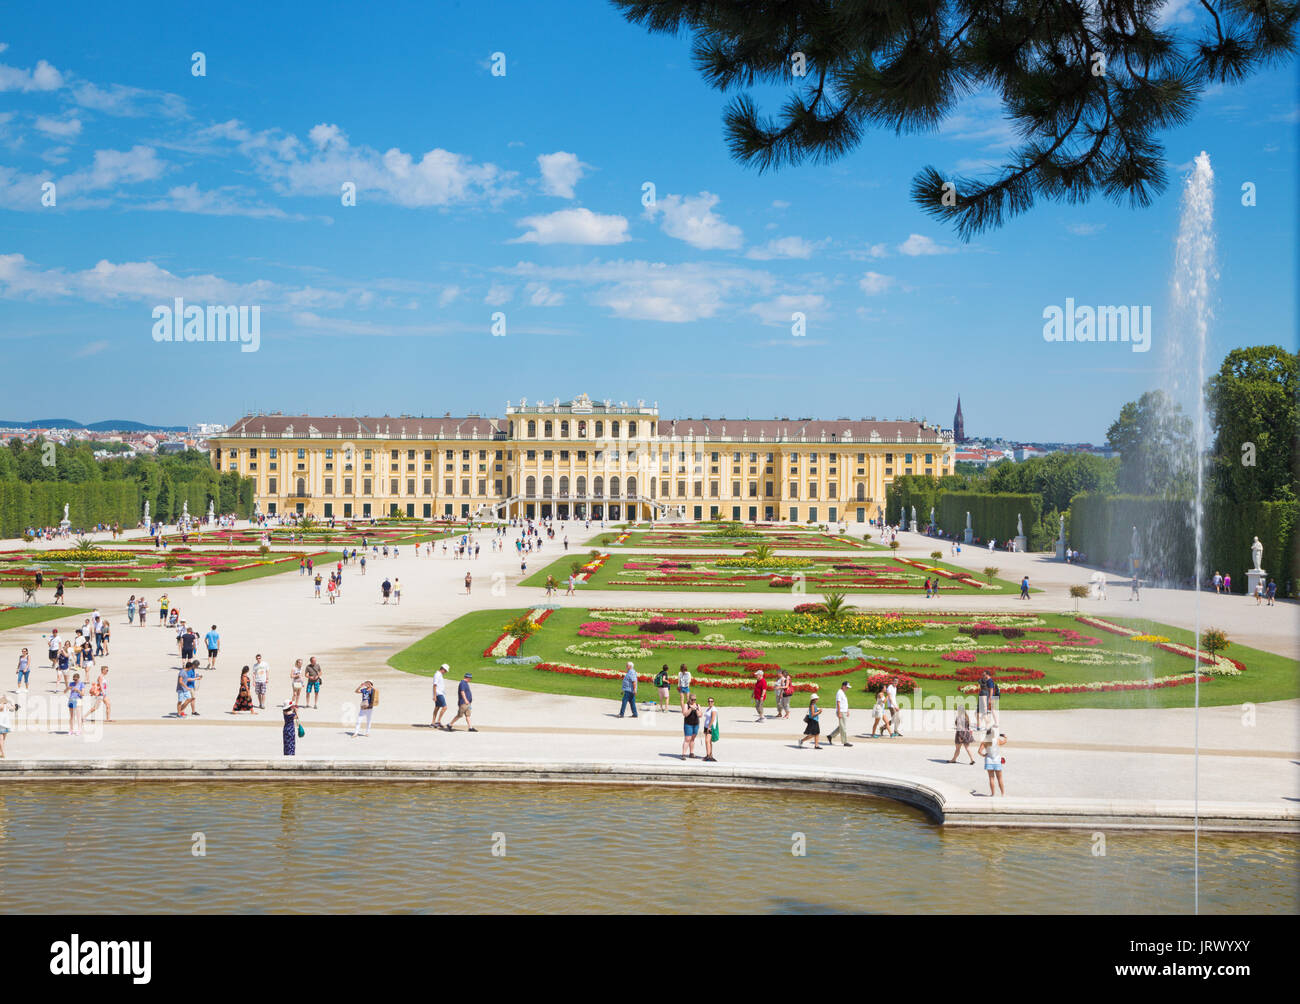 VIENNA, AUSTRIA - JULY 30, 2014: The Schonbrunn palace and gardens from Neptune fountain. - Stock Image